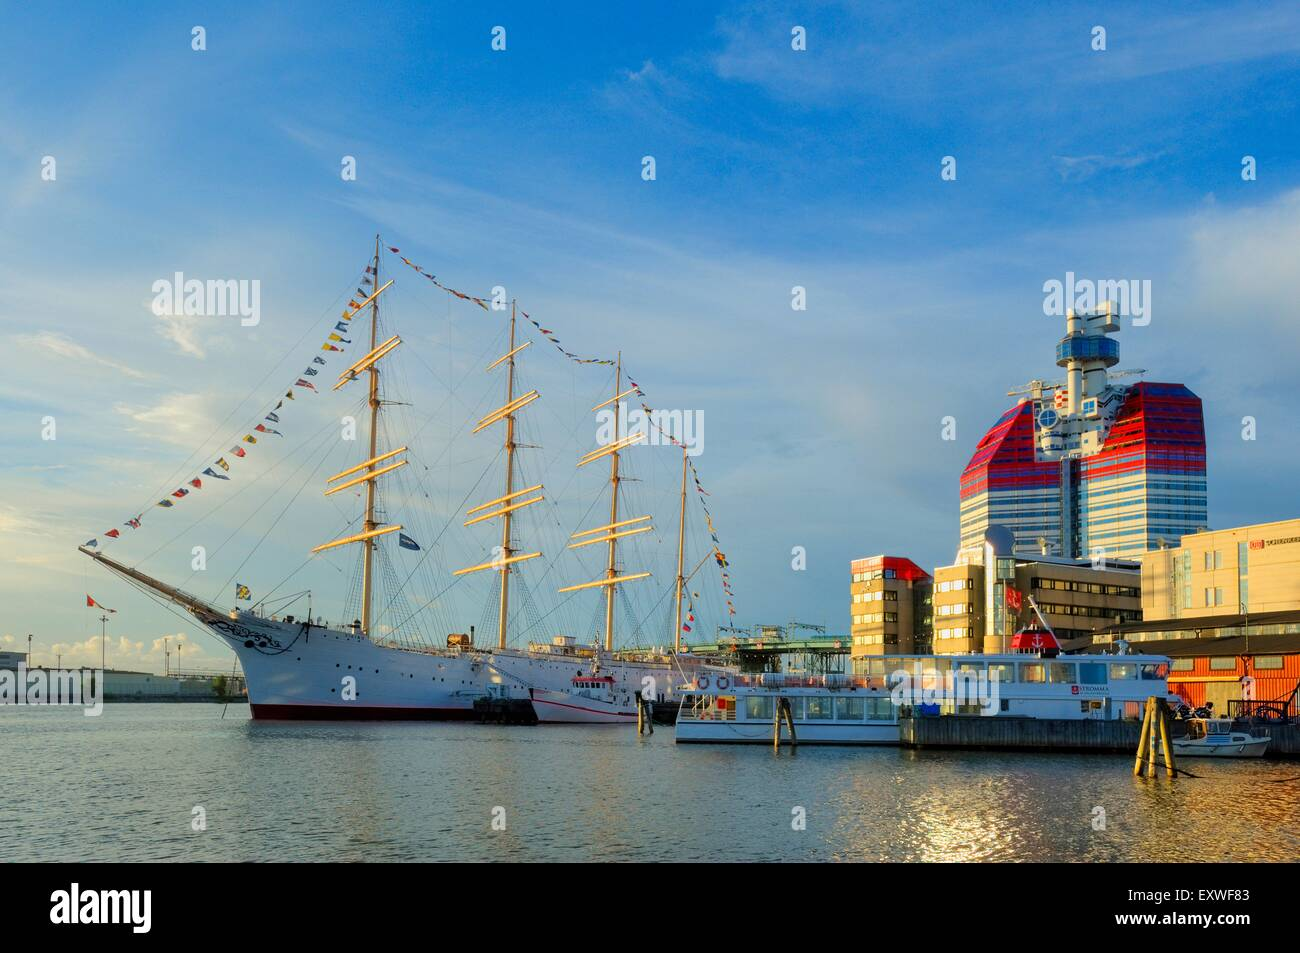 Gothenburg, Sweden - Stock Image